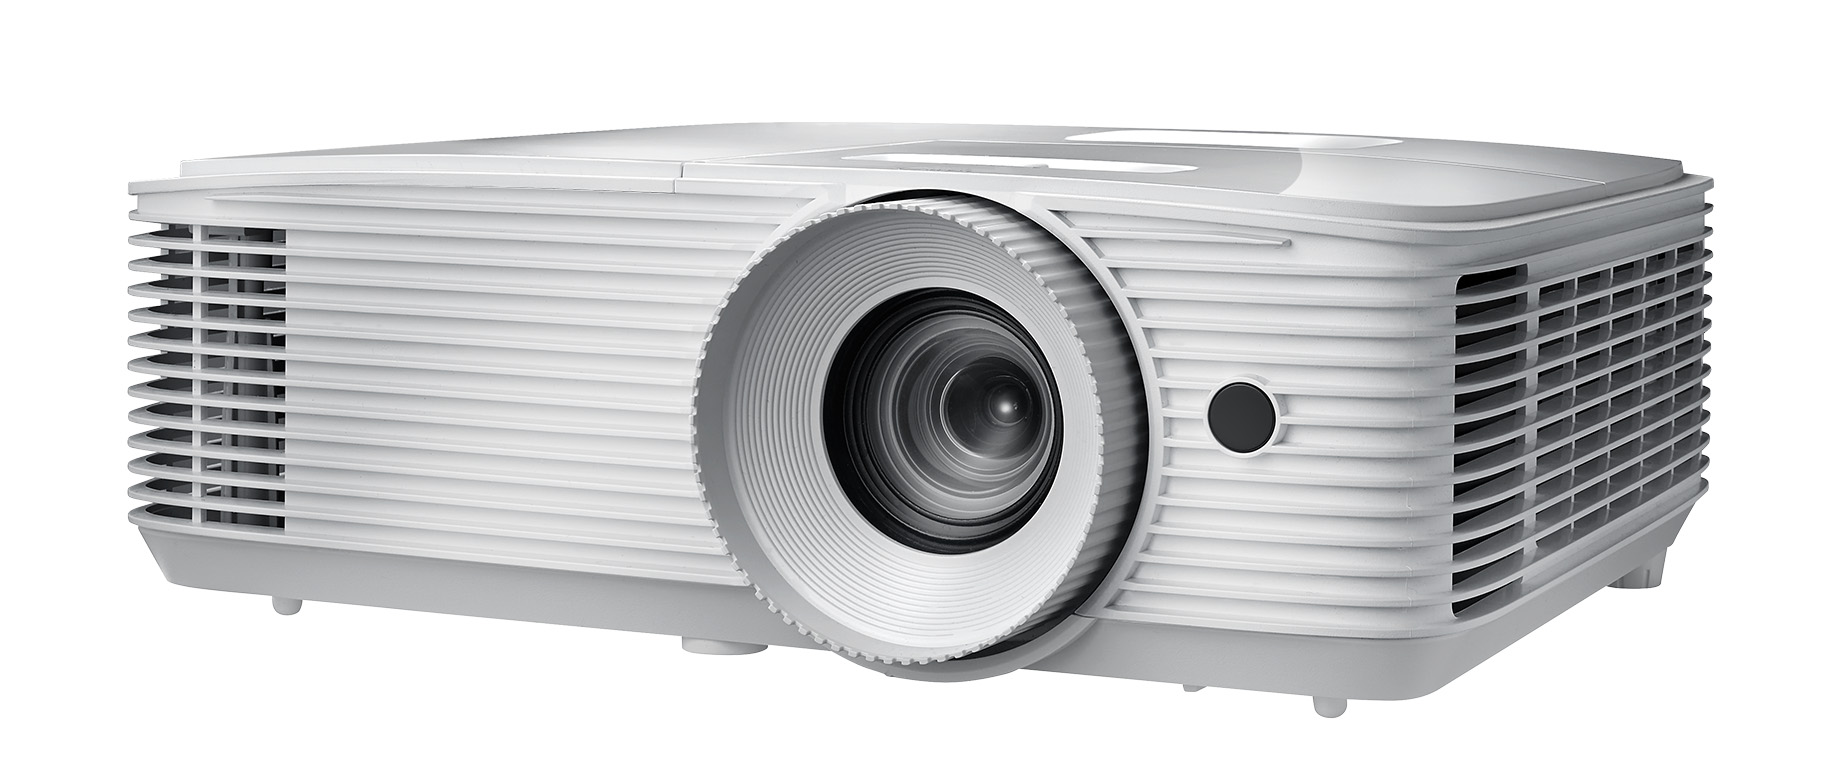 Wu336 compact and powerful projector optoma asia for Small powerful projector